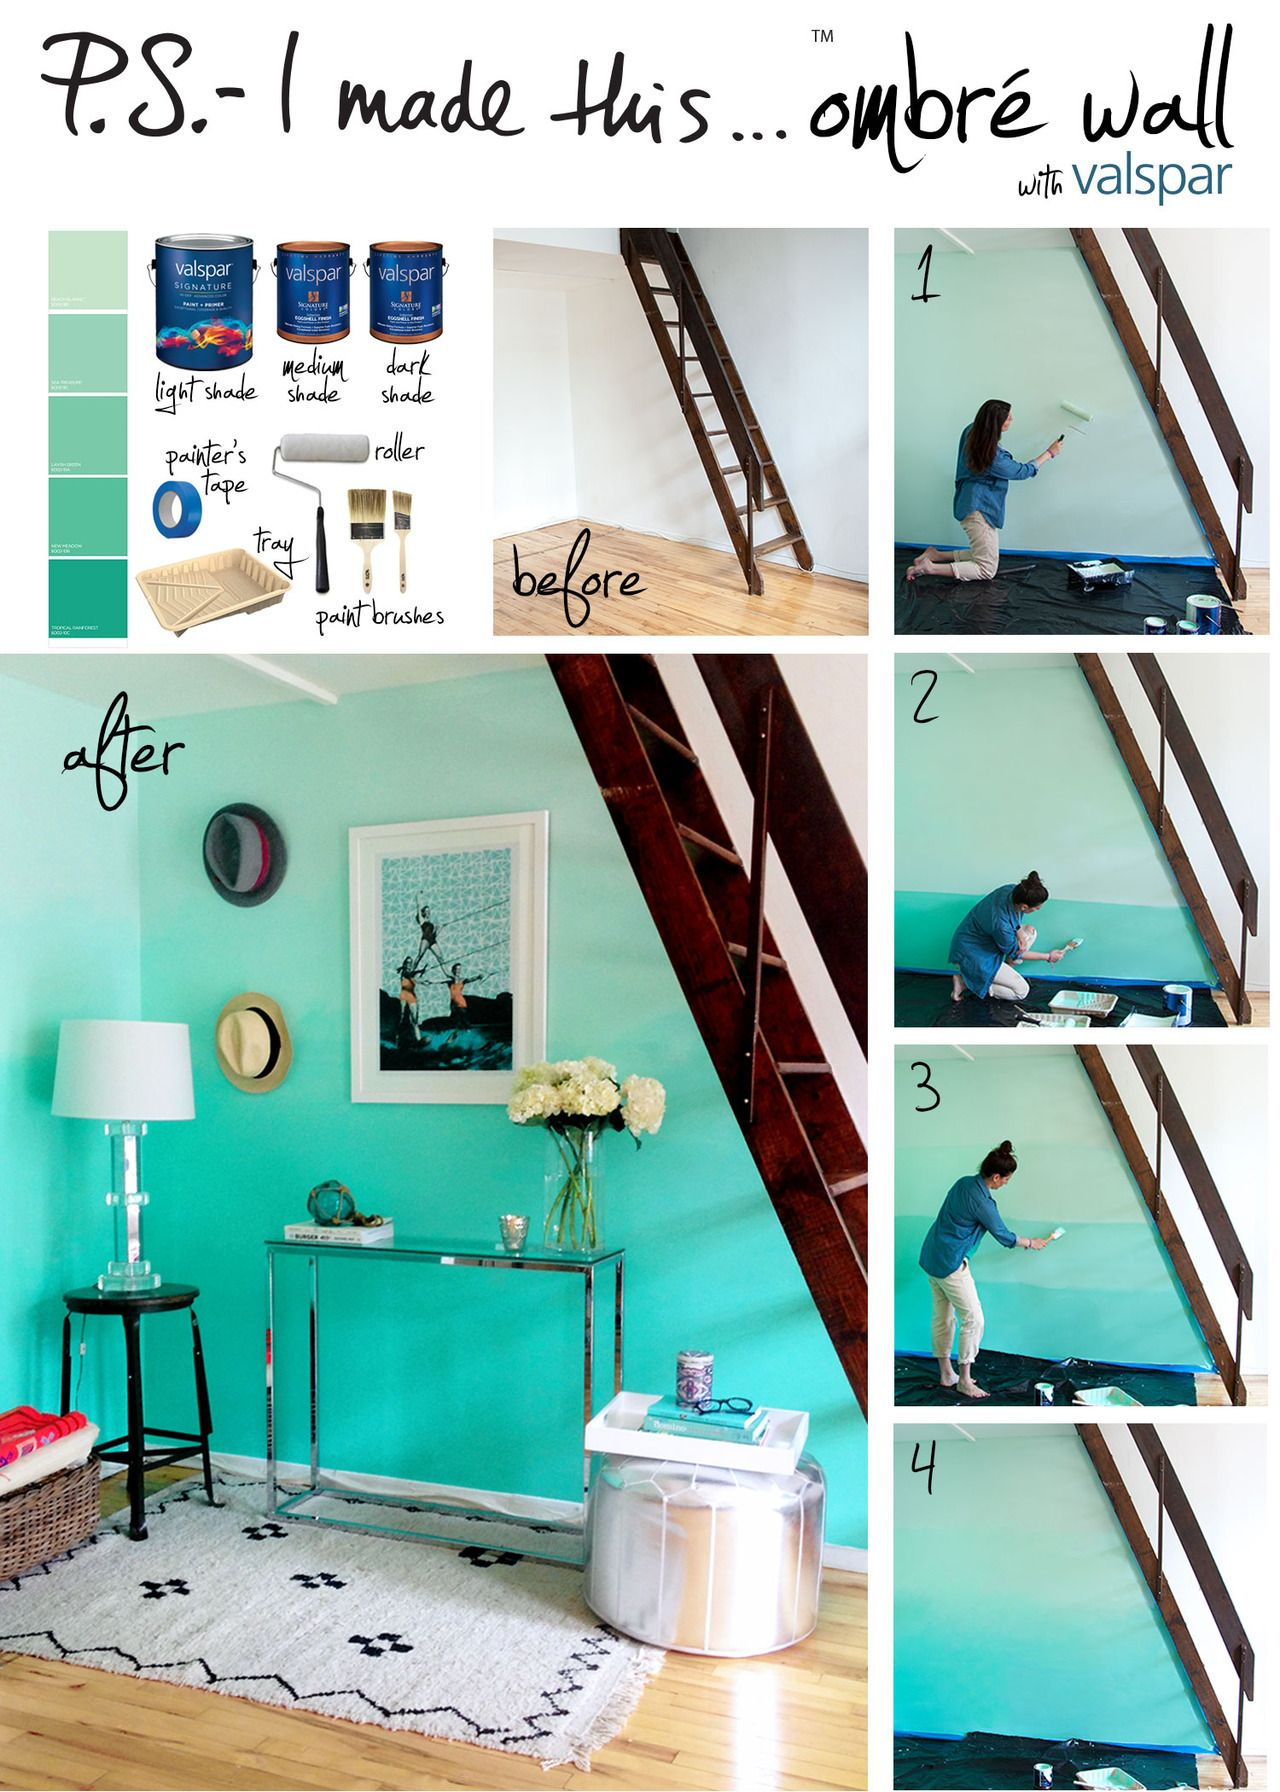 diy: parede degradê! | ombre, walls and diy ombre